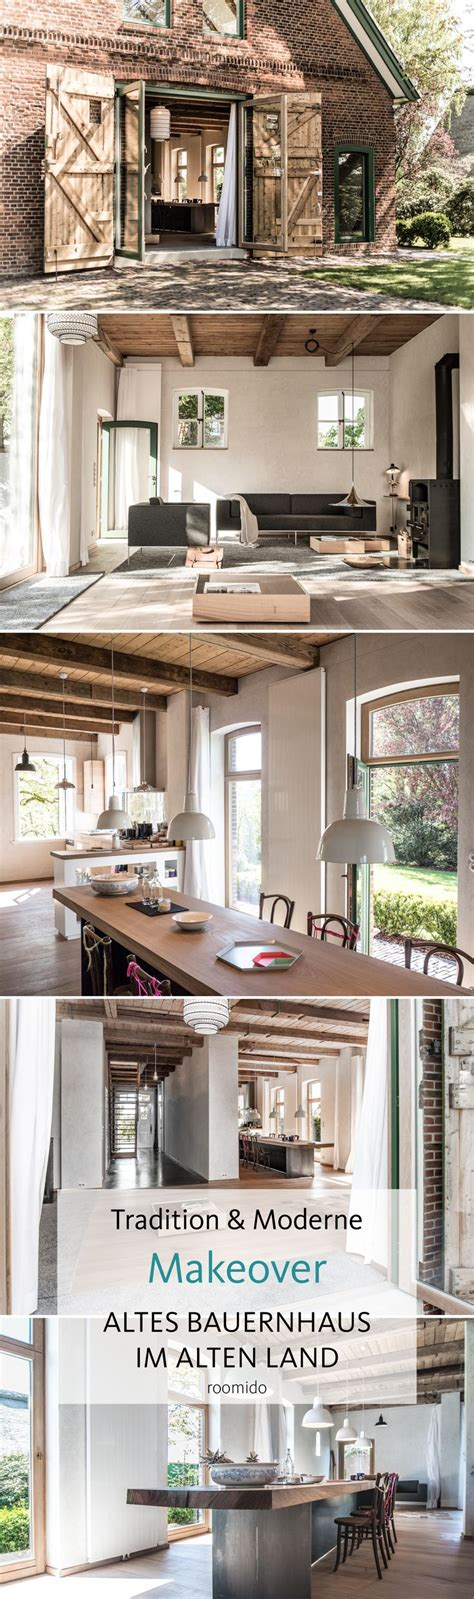 einrichtungsideen wohnzimmer landhausstil 17 best ideas about barn living on barn houses barn homes and converted barn homes